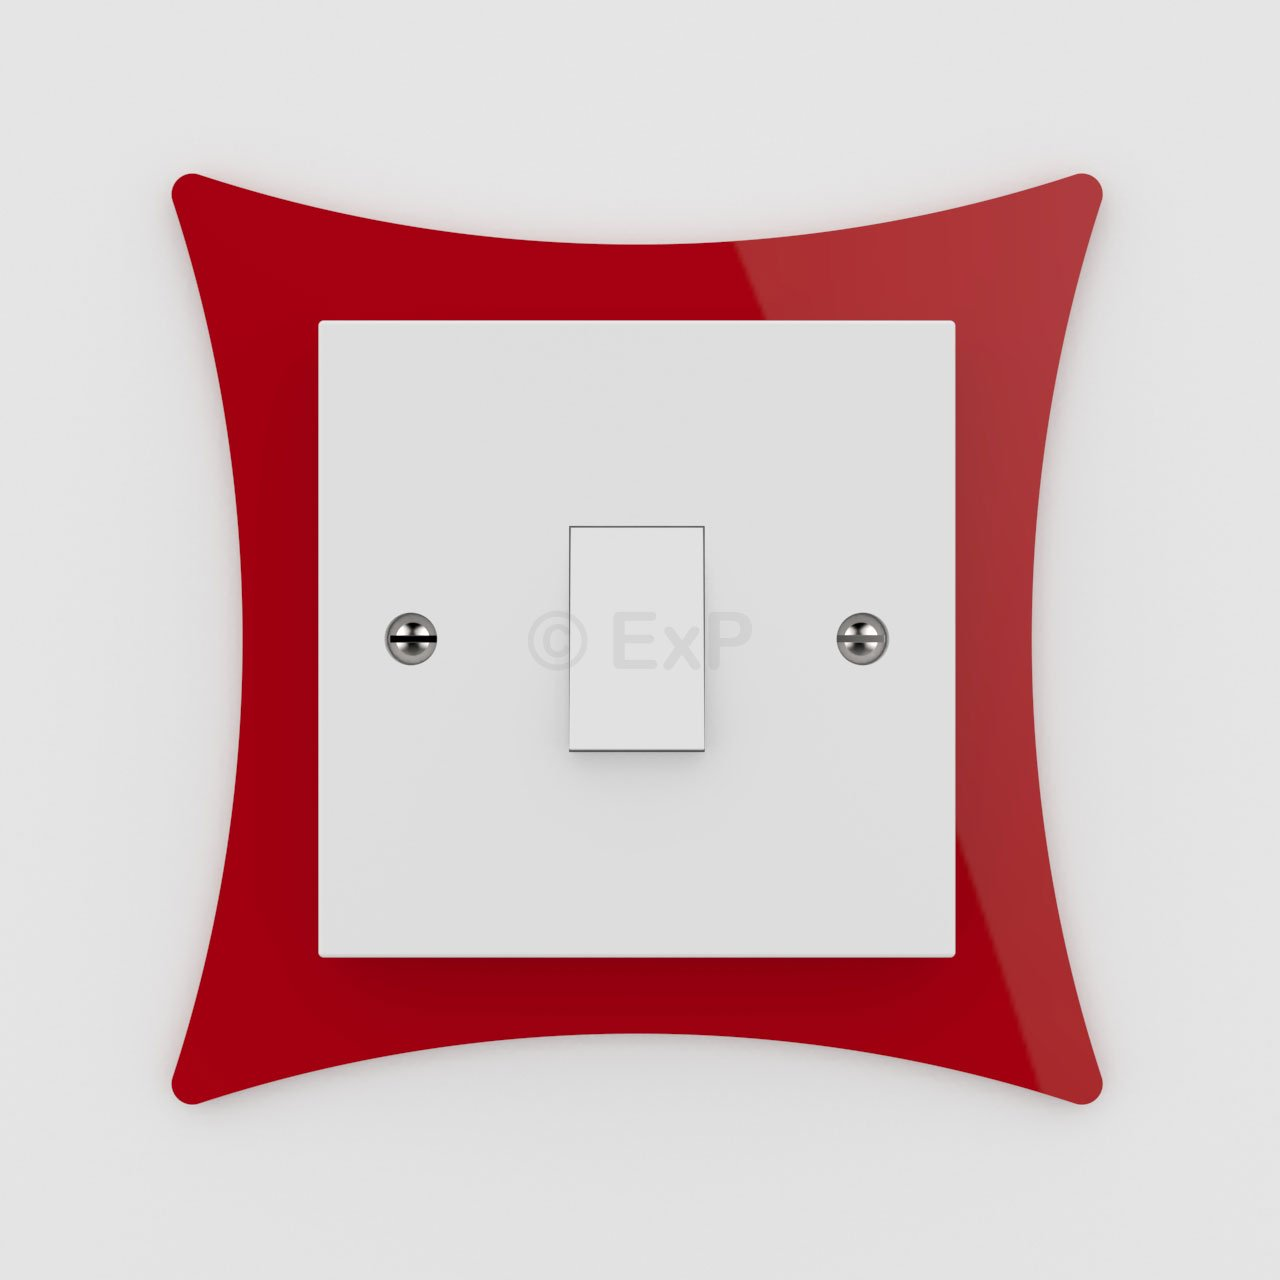 Single Light Switch or Plug Socket Back Plate Finger Surround Panel Lime (8 Colours Available) - Free Trolley Token Material Sample Included per Shipment Expression Products